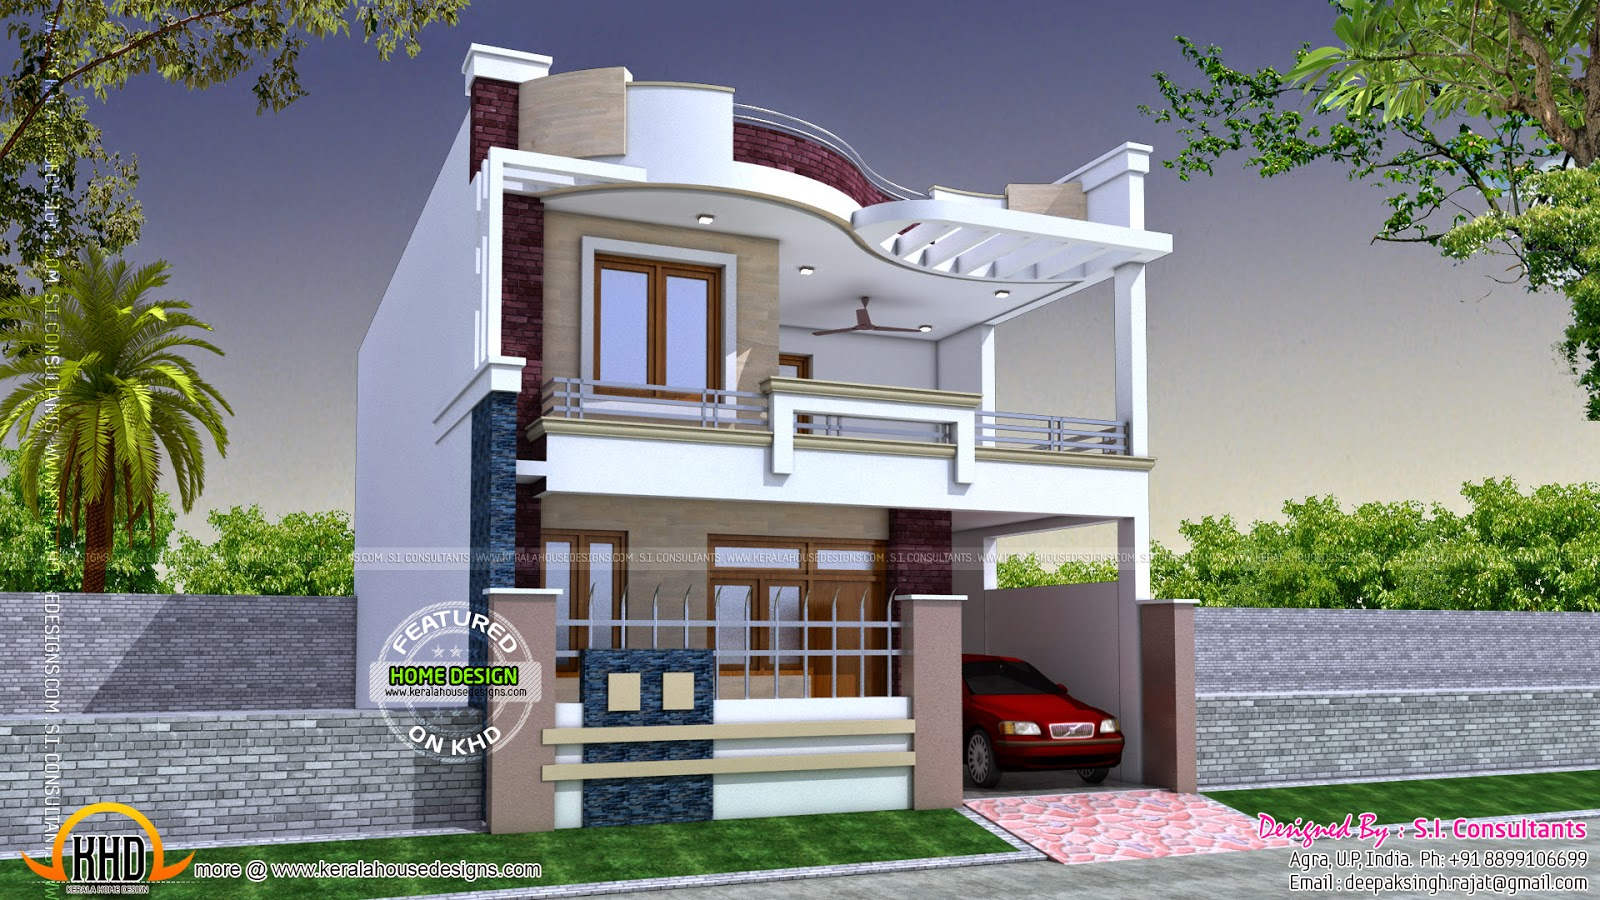 Modern indian home design kerala home design and floor plans for Award winning house designs in india